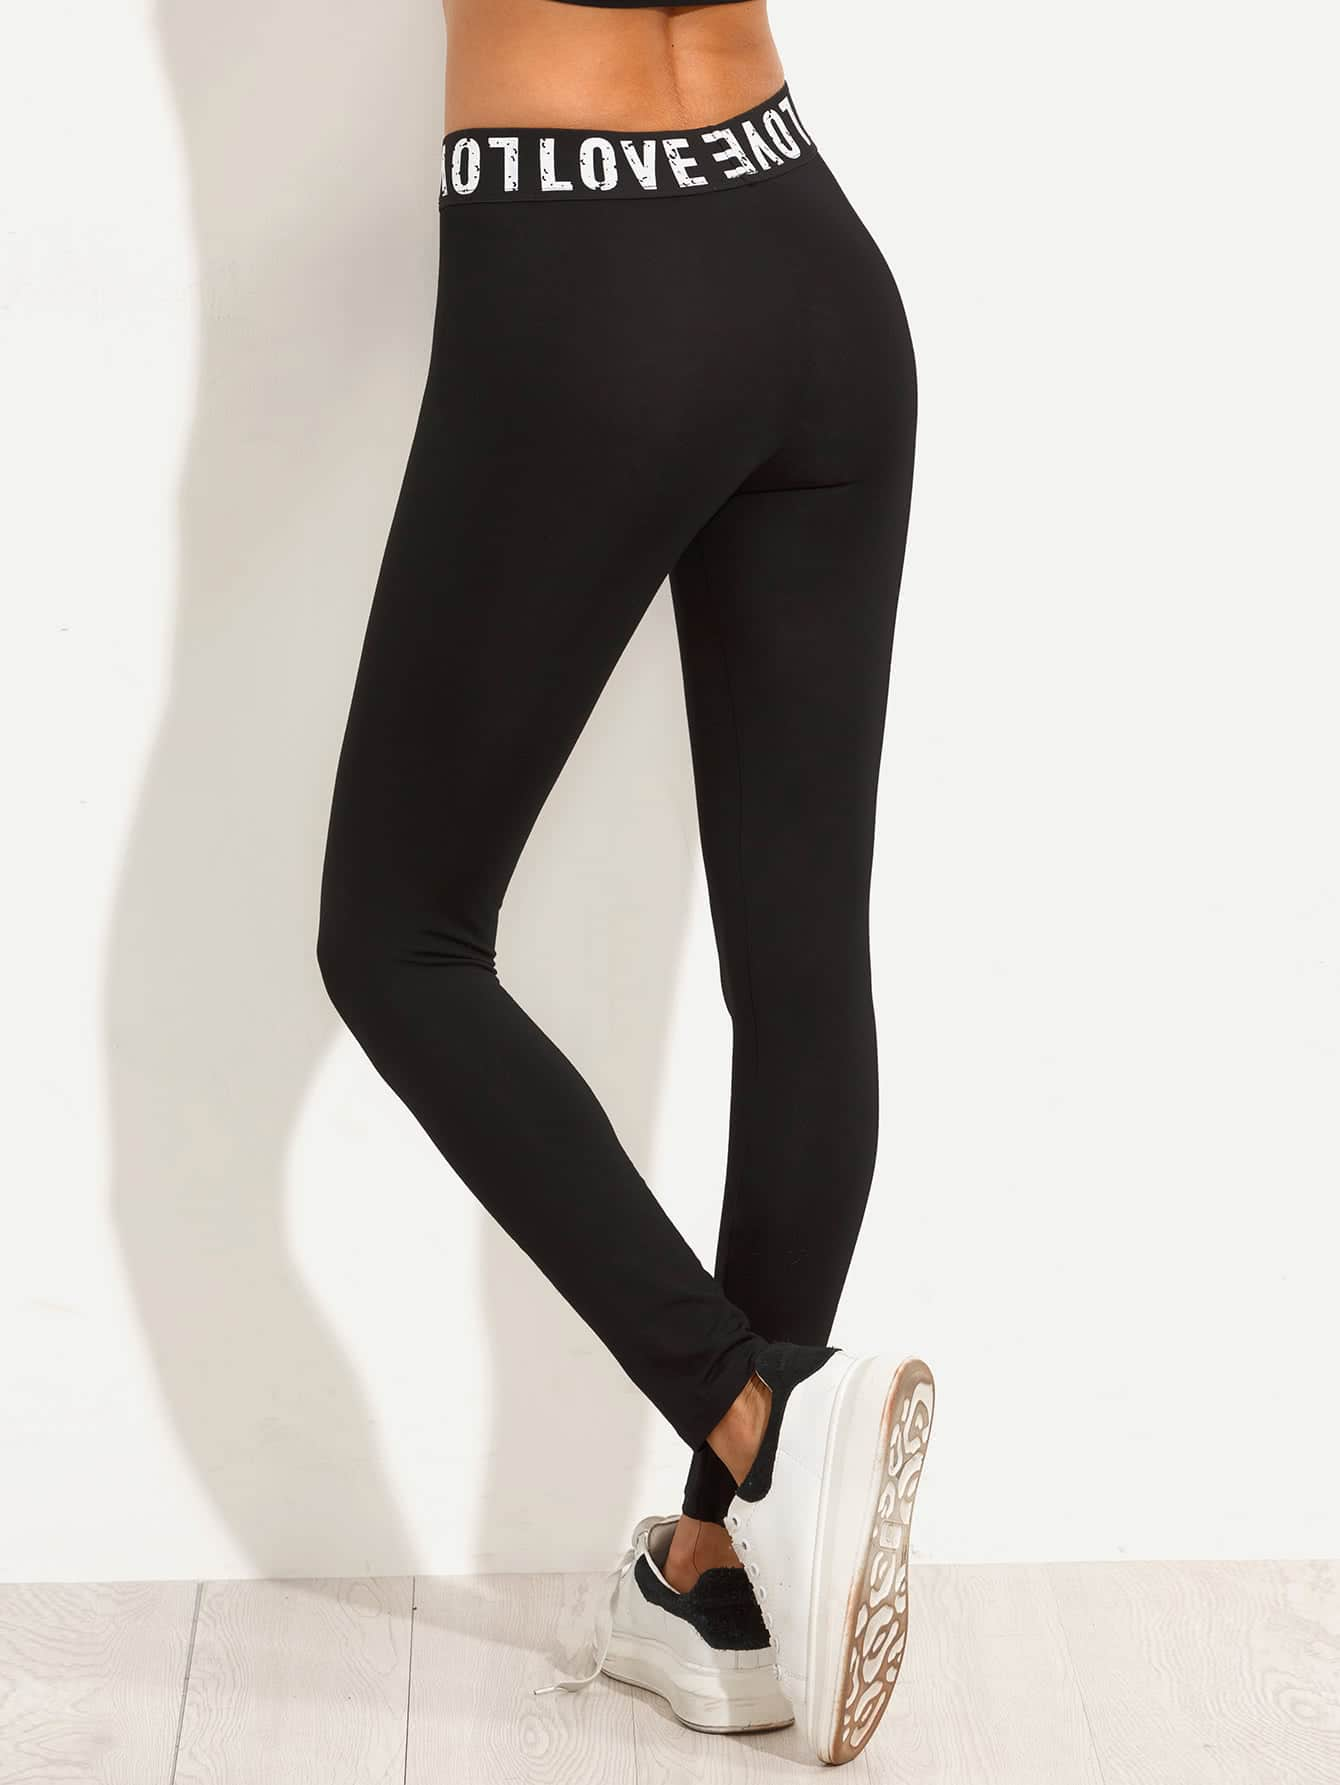 Black Letters Print Stretchy Skinny Leggings